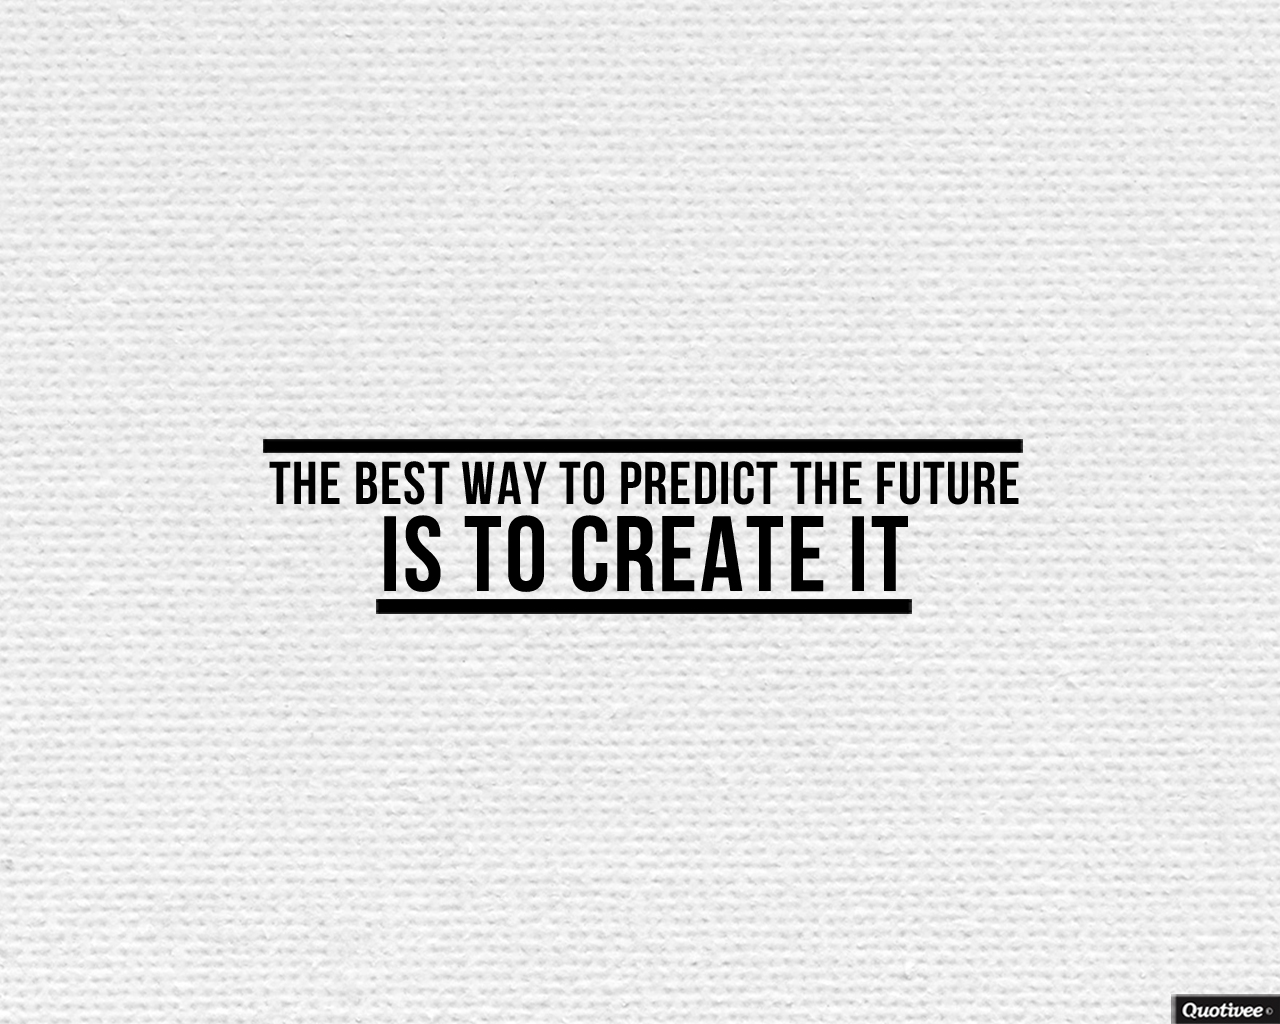 Quotes On Success Wallpapers The Best Way To Predict The Future Inspirational Quotes